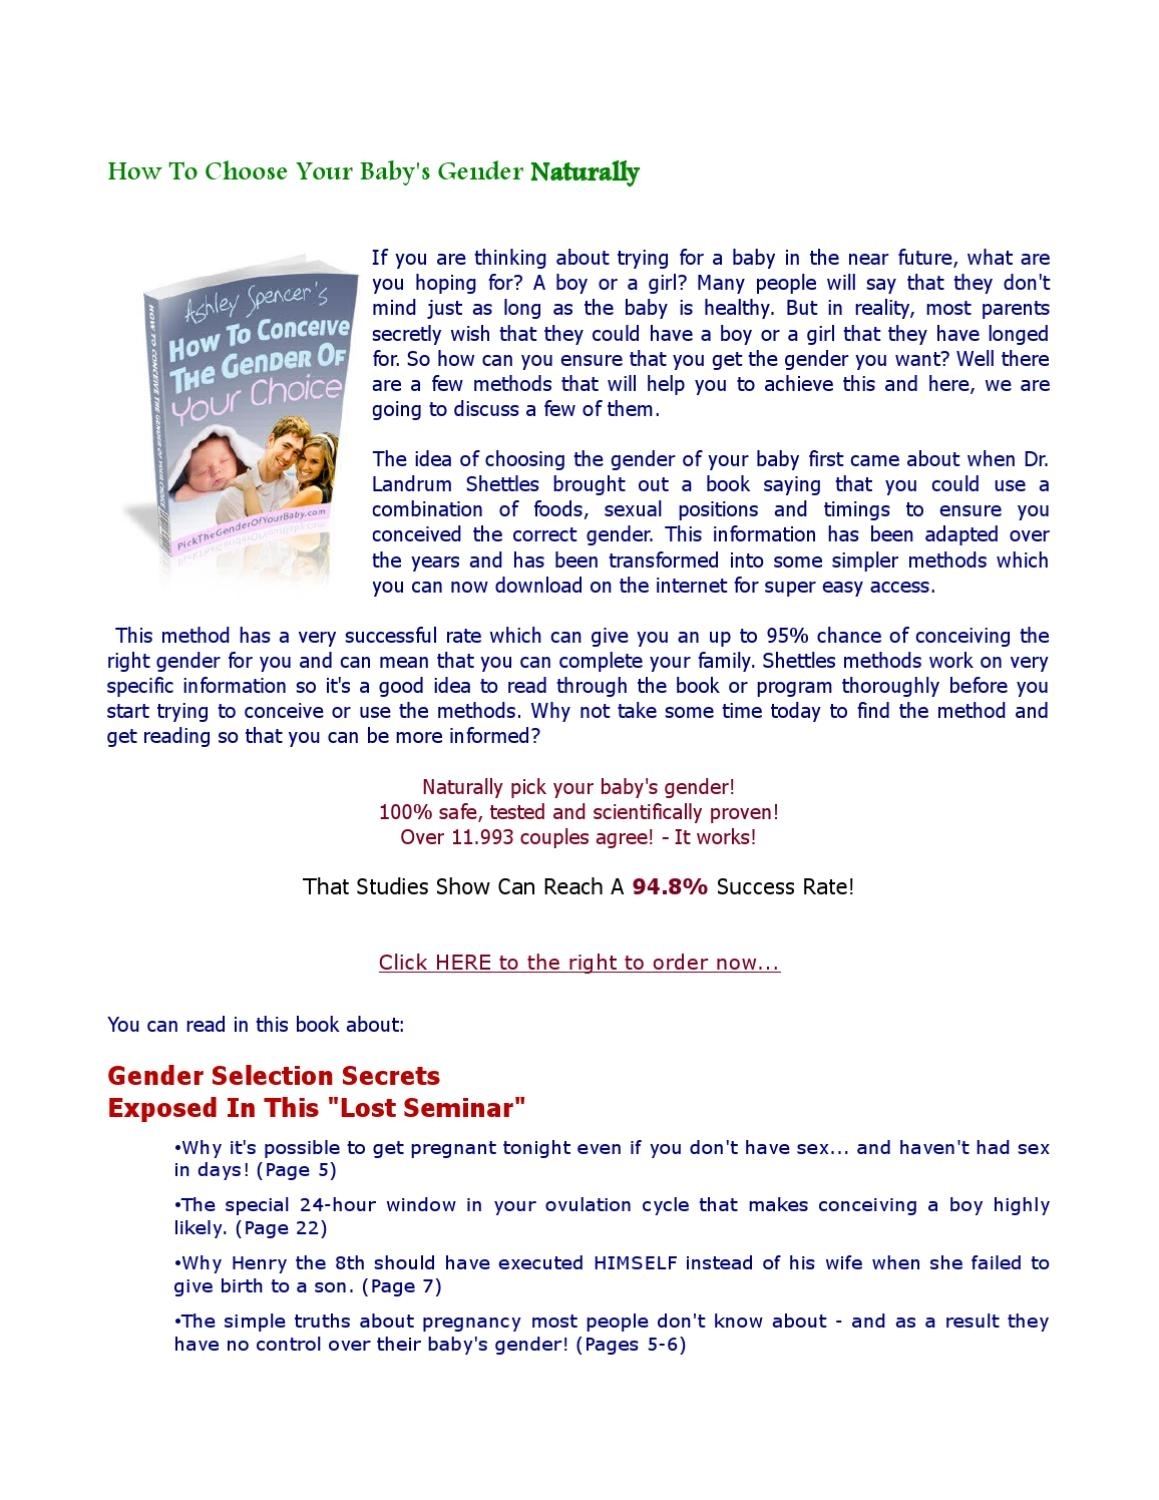 How To Choose Your Baby's Gender Naturallykitu K - Issuu inside How To Choose Your Babys Gender